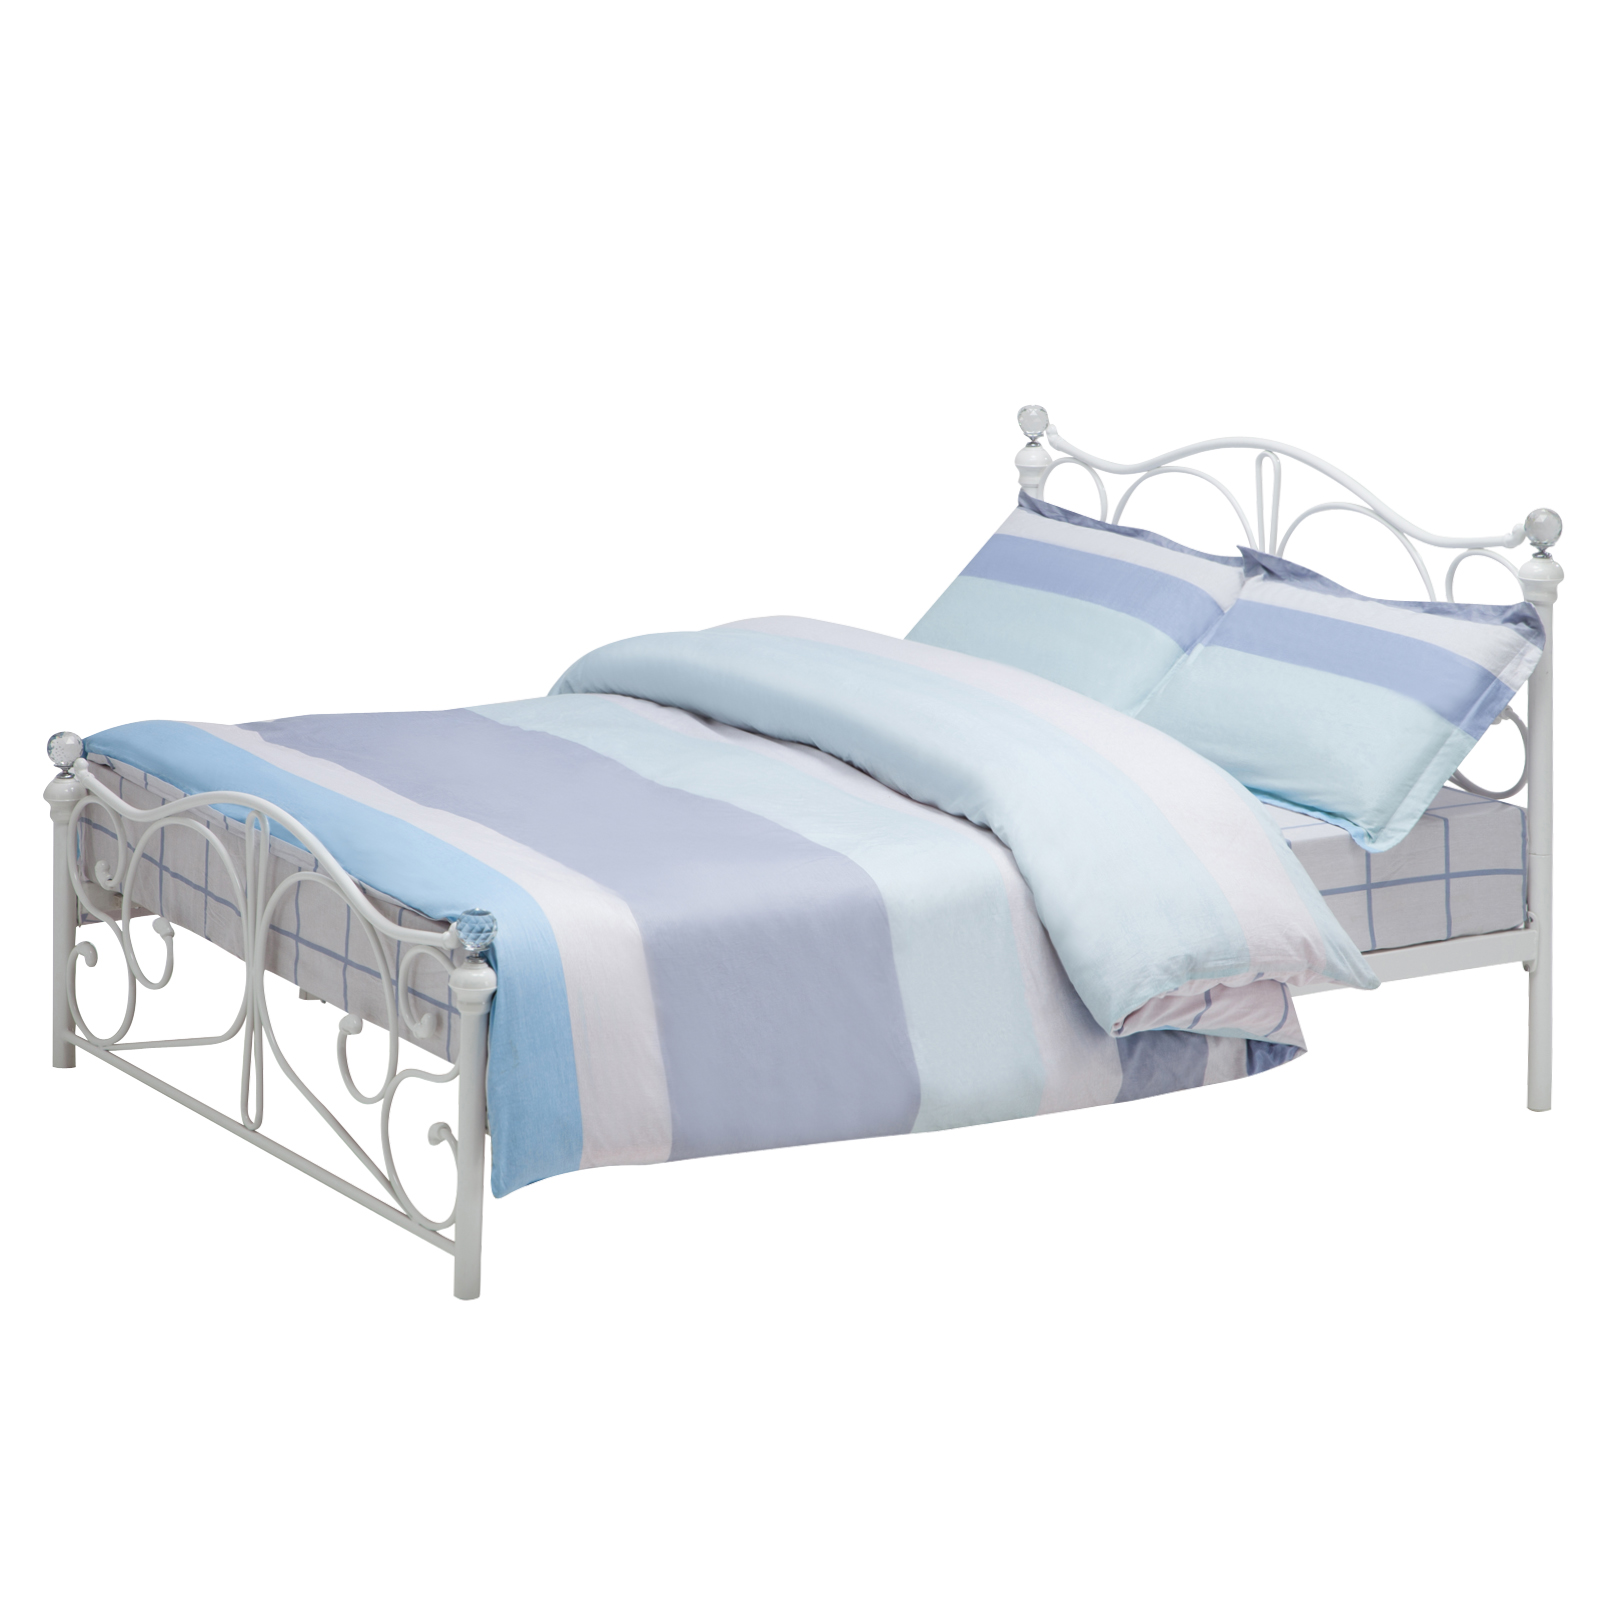 white full size metal bed frame cry finial headboard footboard ebay. Black Bedroom Furniture Sets. Home Design Ideas